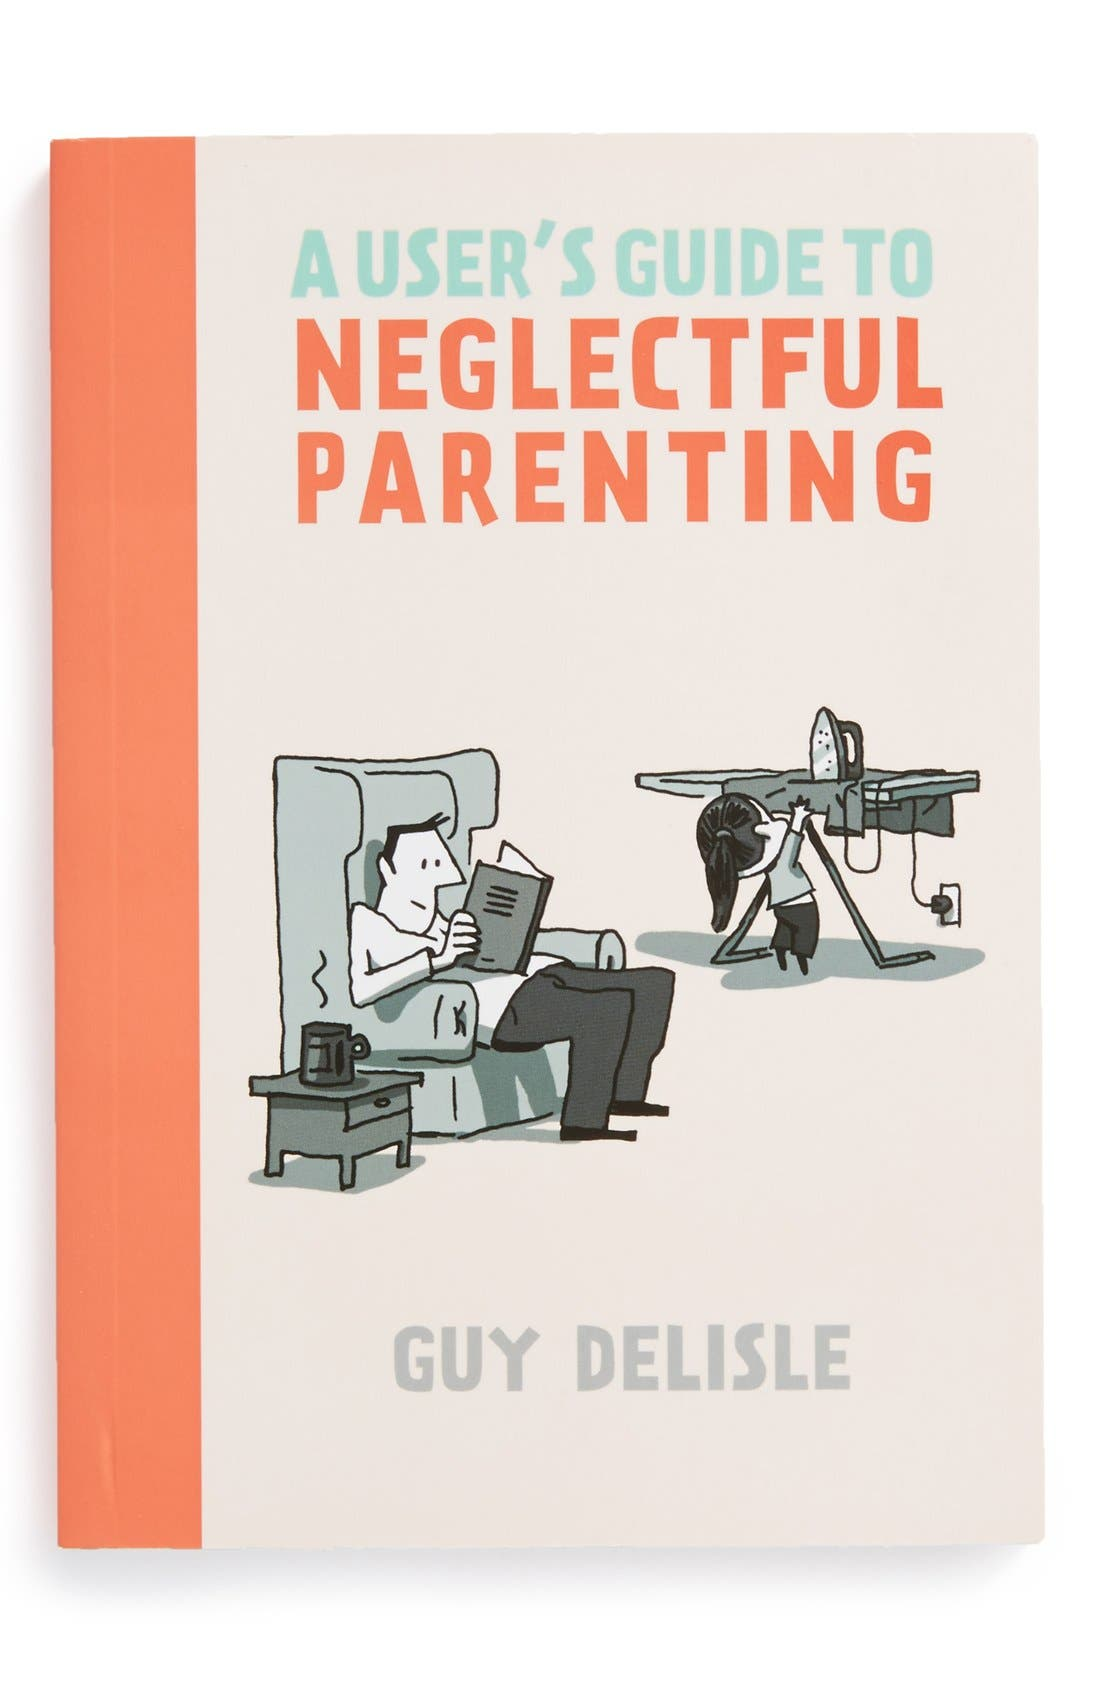 Alternate Image 1 Selected - 'A User's Guide to Neglectful Parenting' Book